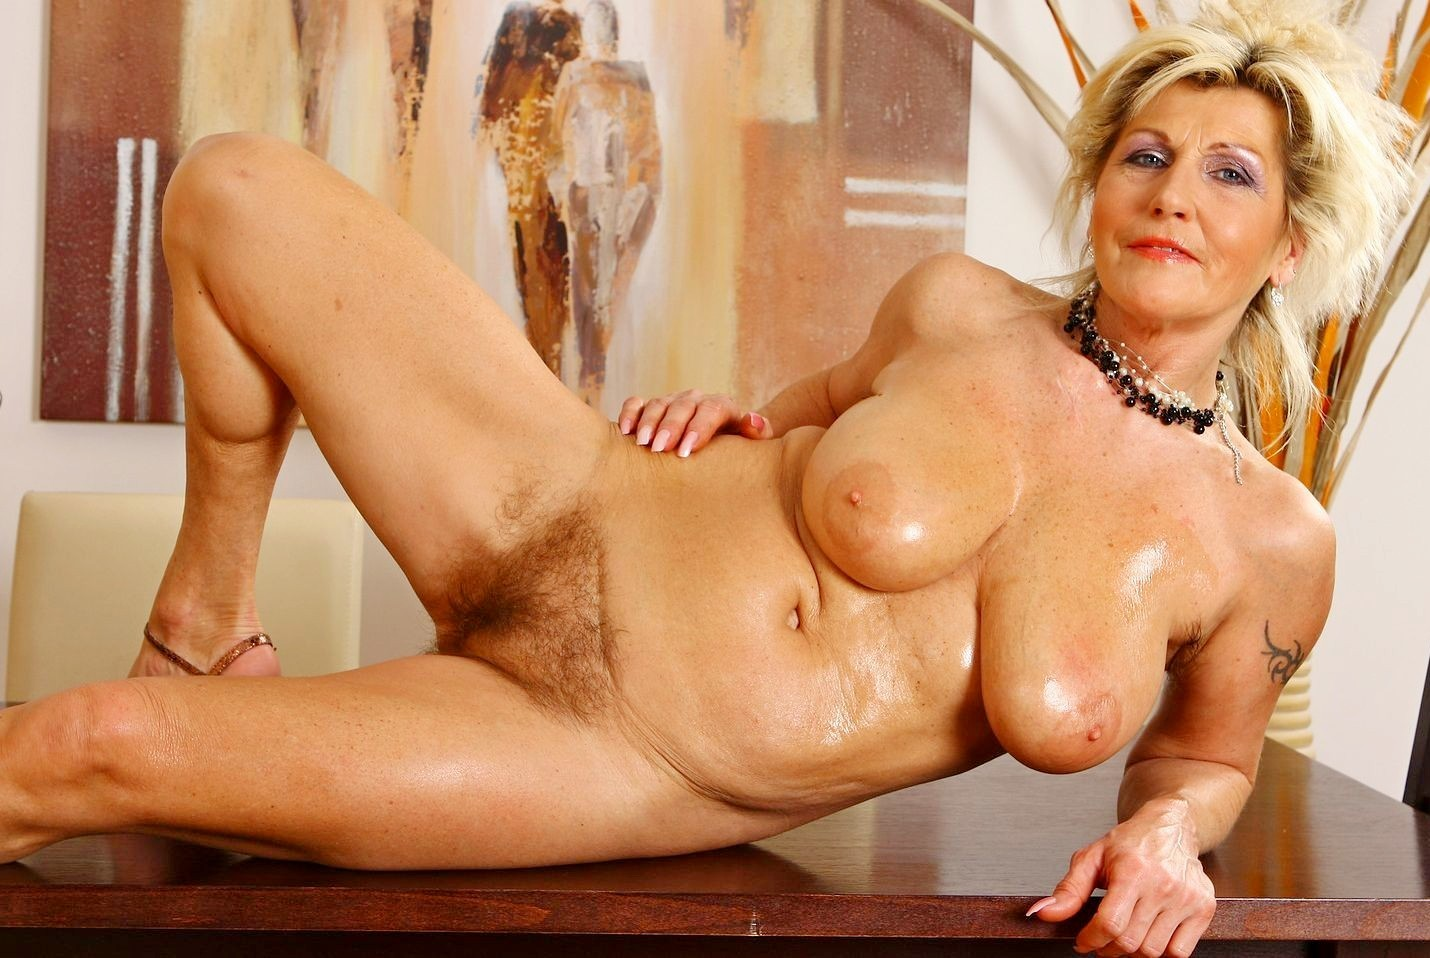 busty-slim-nude-mature-woman